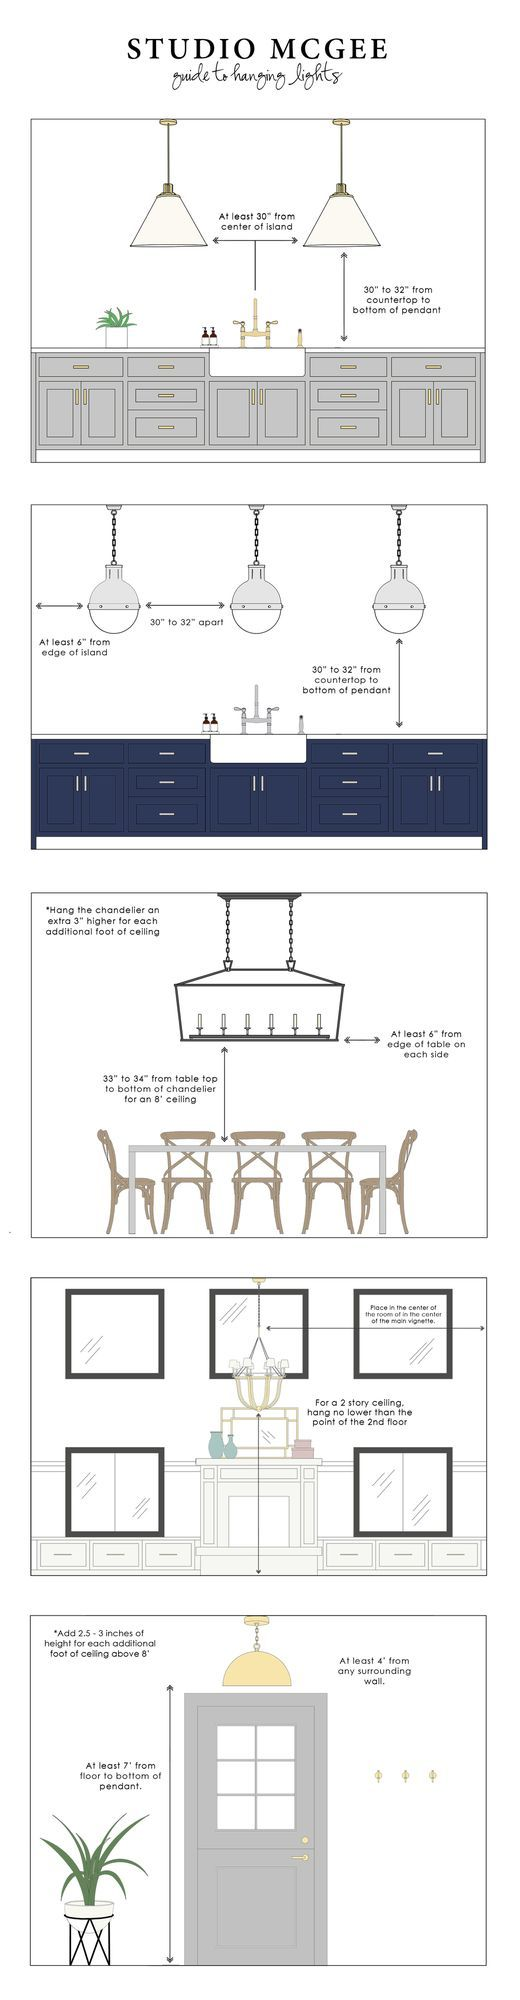 Studio Mcgee S Guide To Hanging Lights Studio Mcgee Kitchen Lighting Over Table House Design Remodel